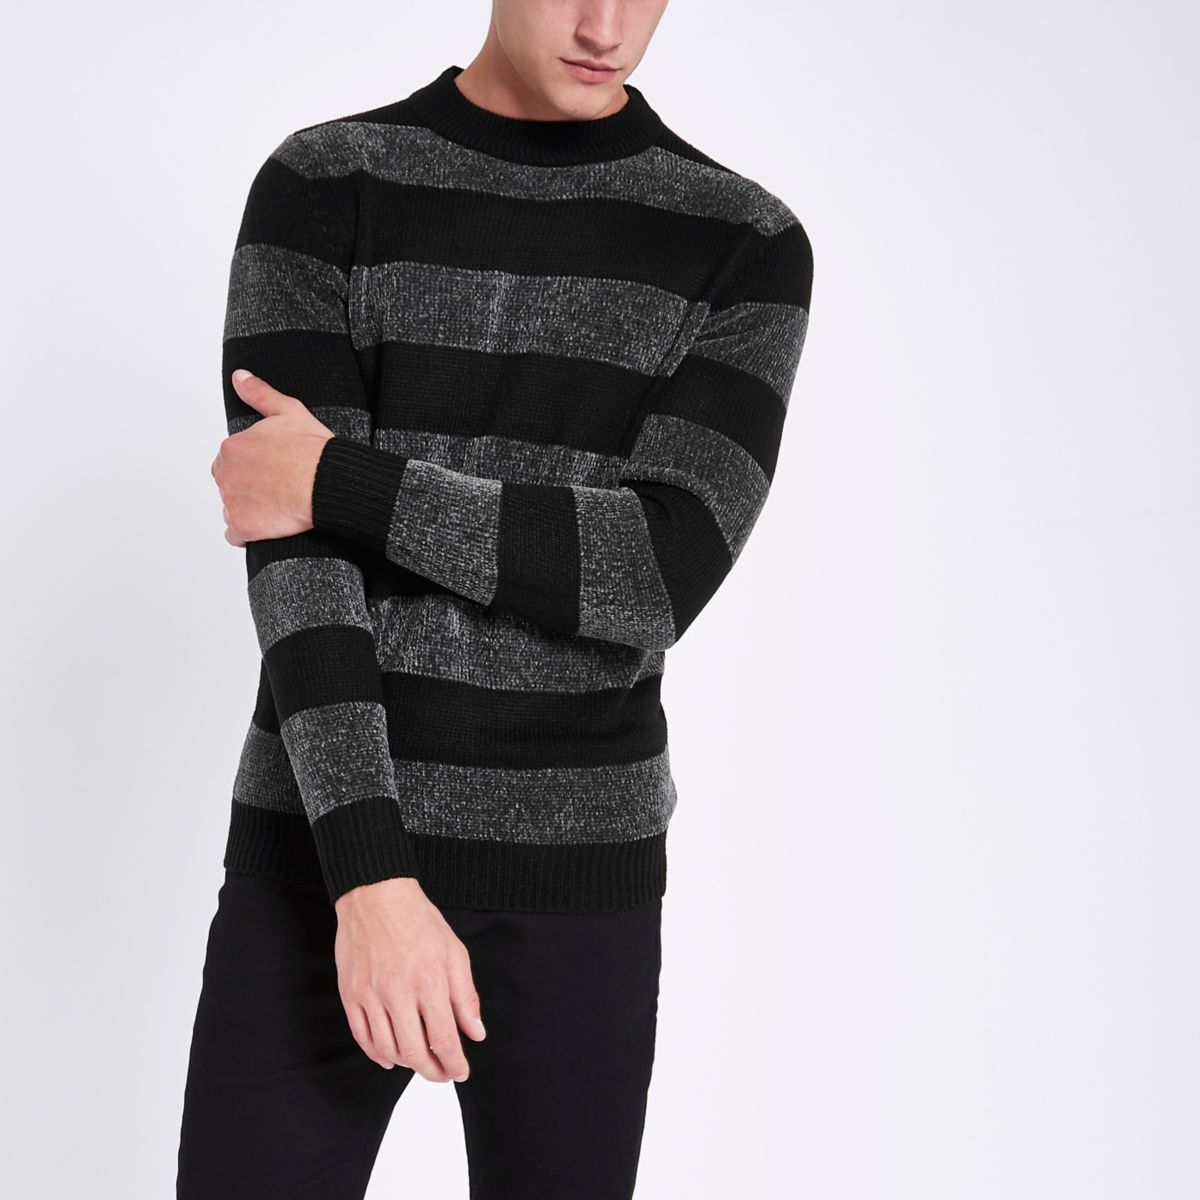 Black striped muscle fit chenille knit sweater